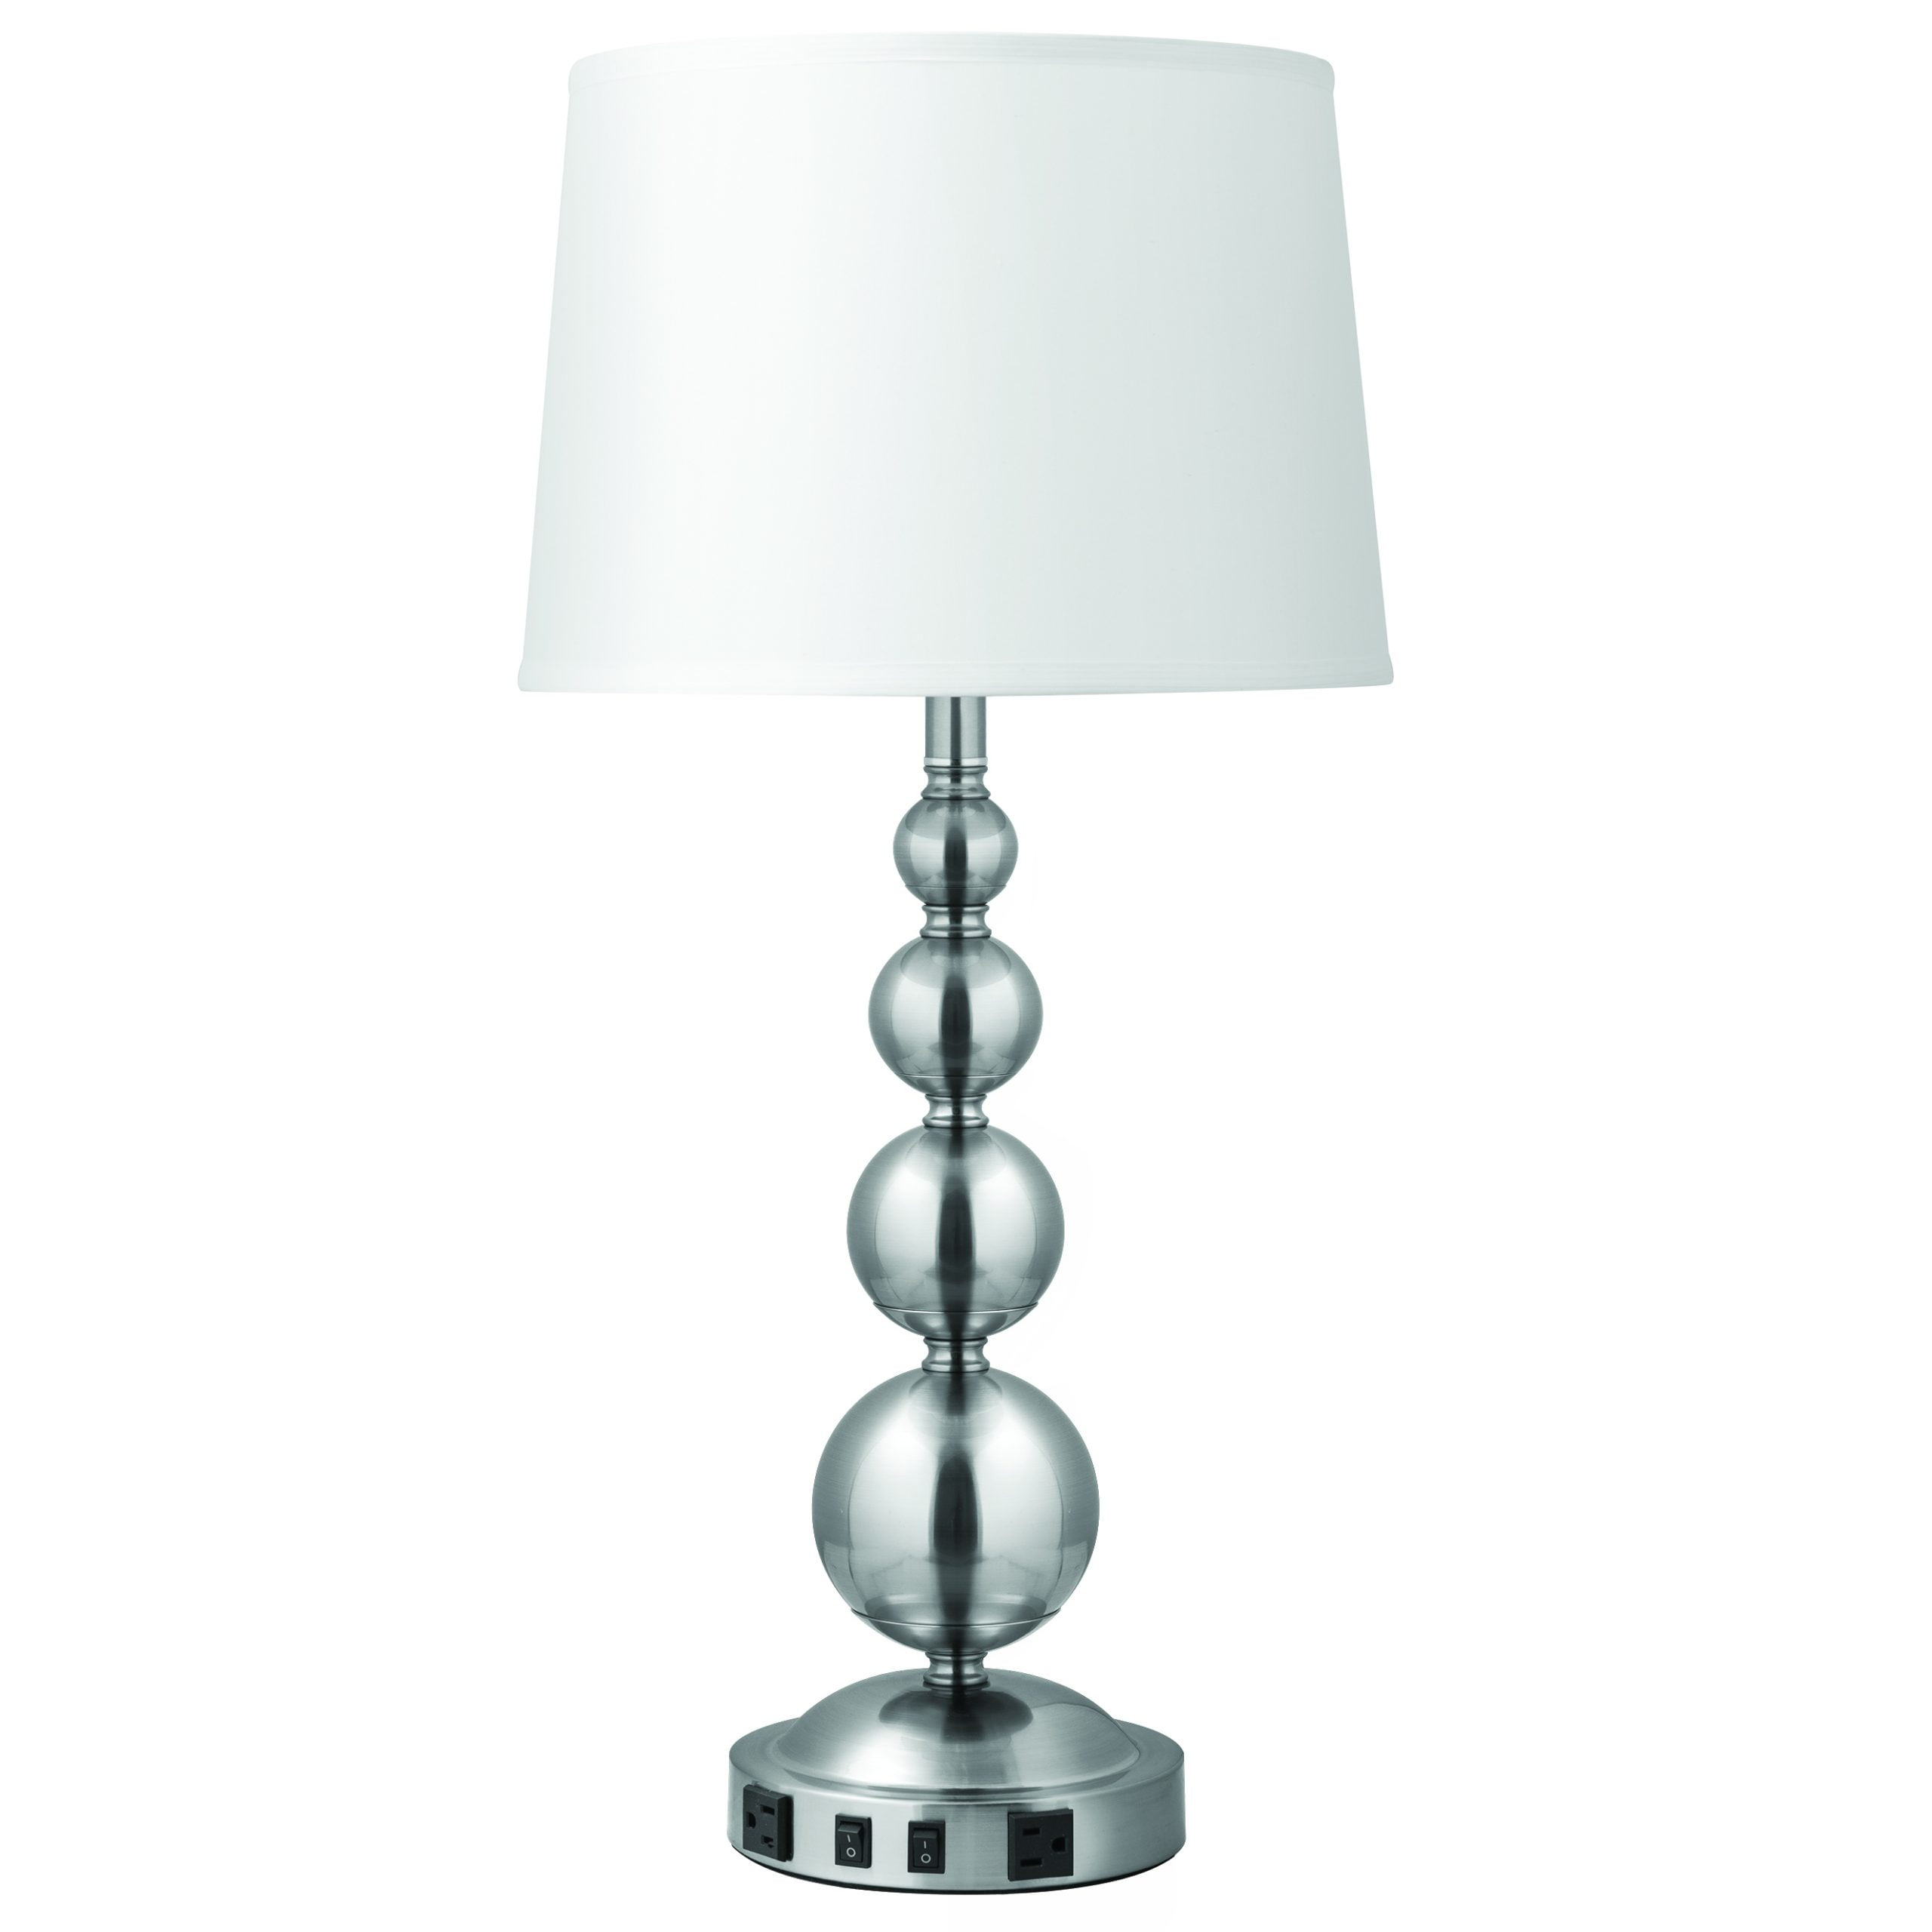 Lush Vert Twin Table Lamp with 2 Outlets